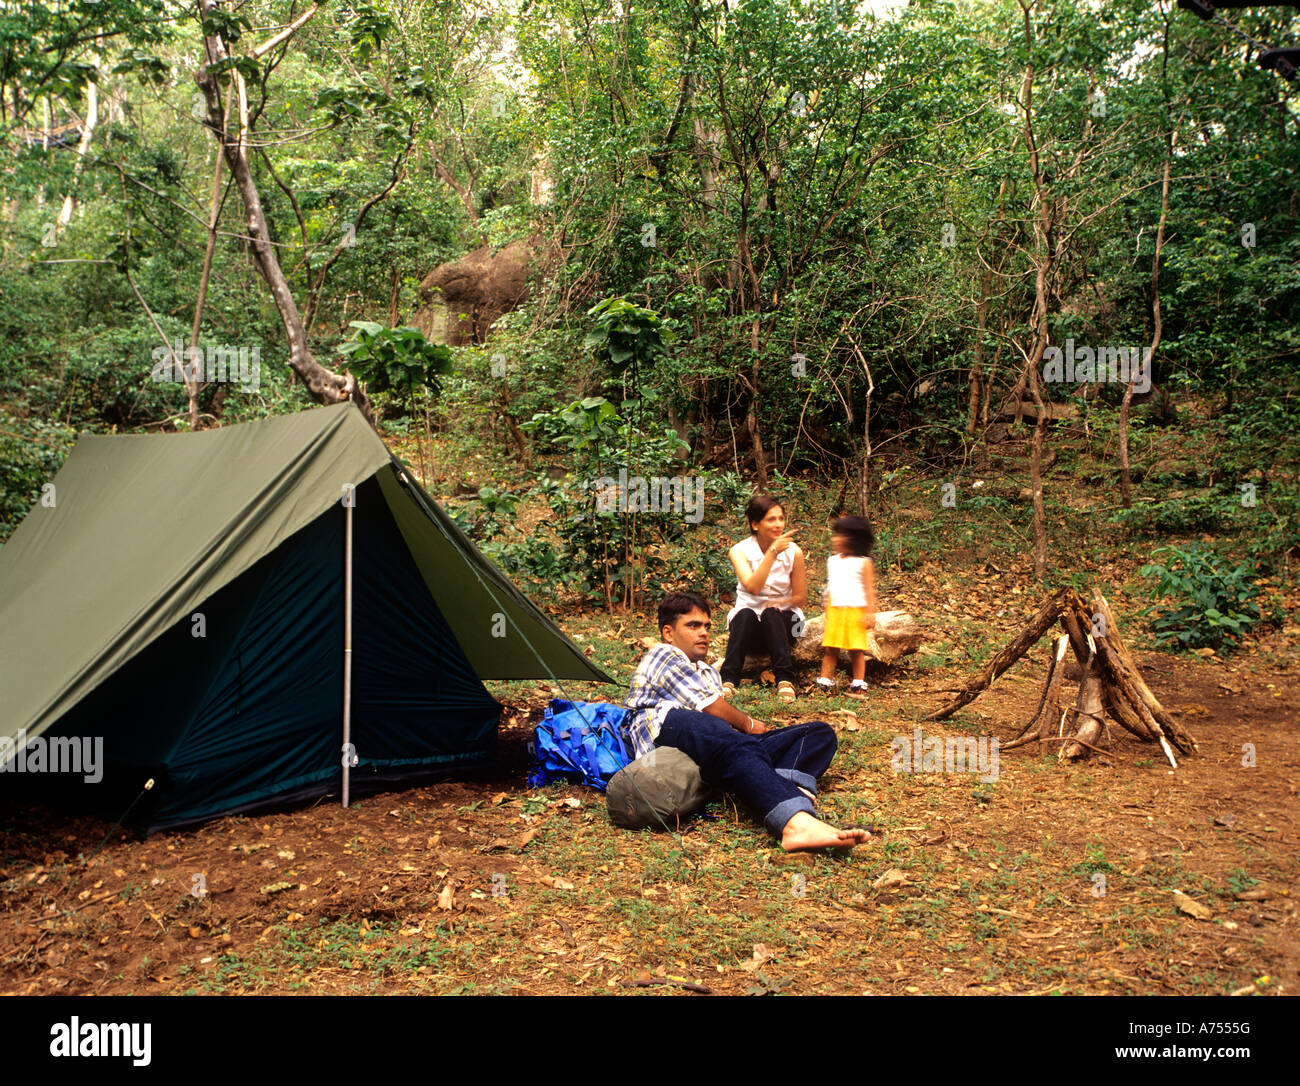 Thenmala Ecotourism: THENMALA ECO TOURISM KERALA Stock Photo: 11727243